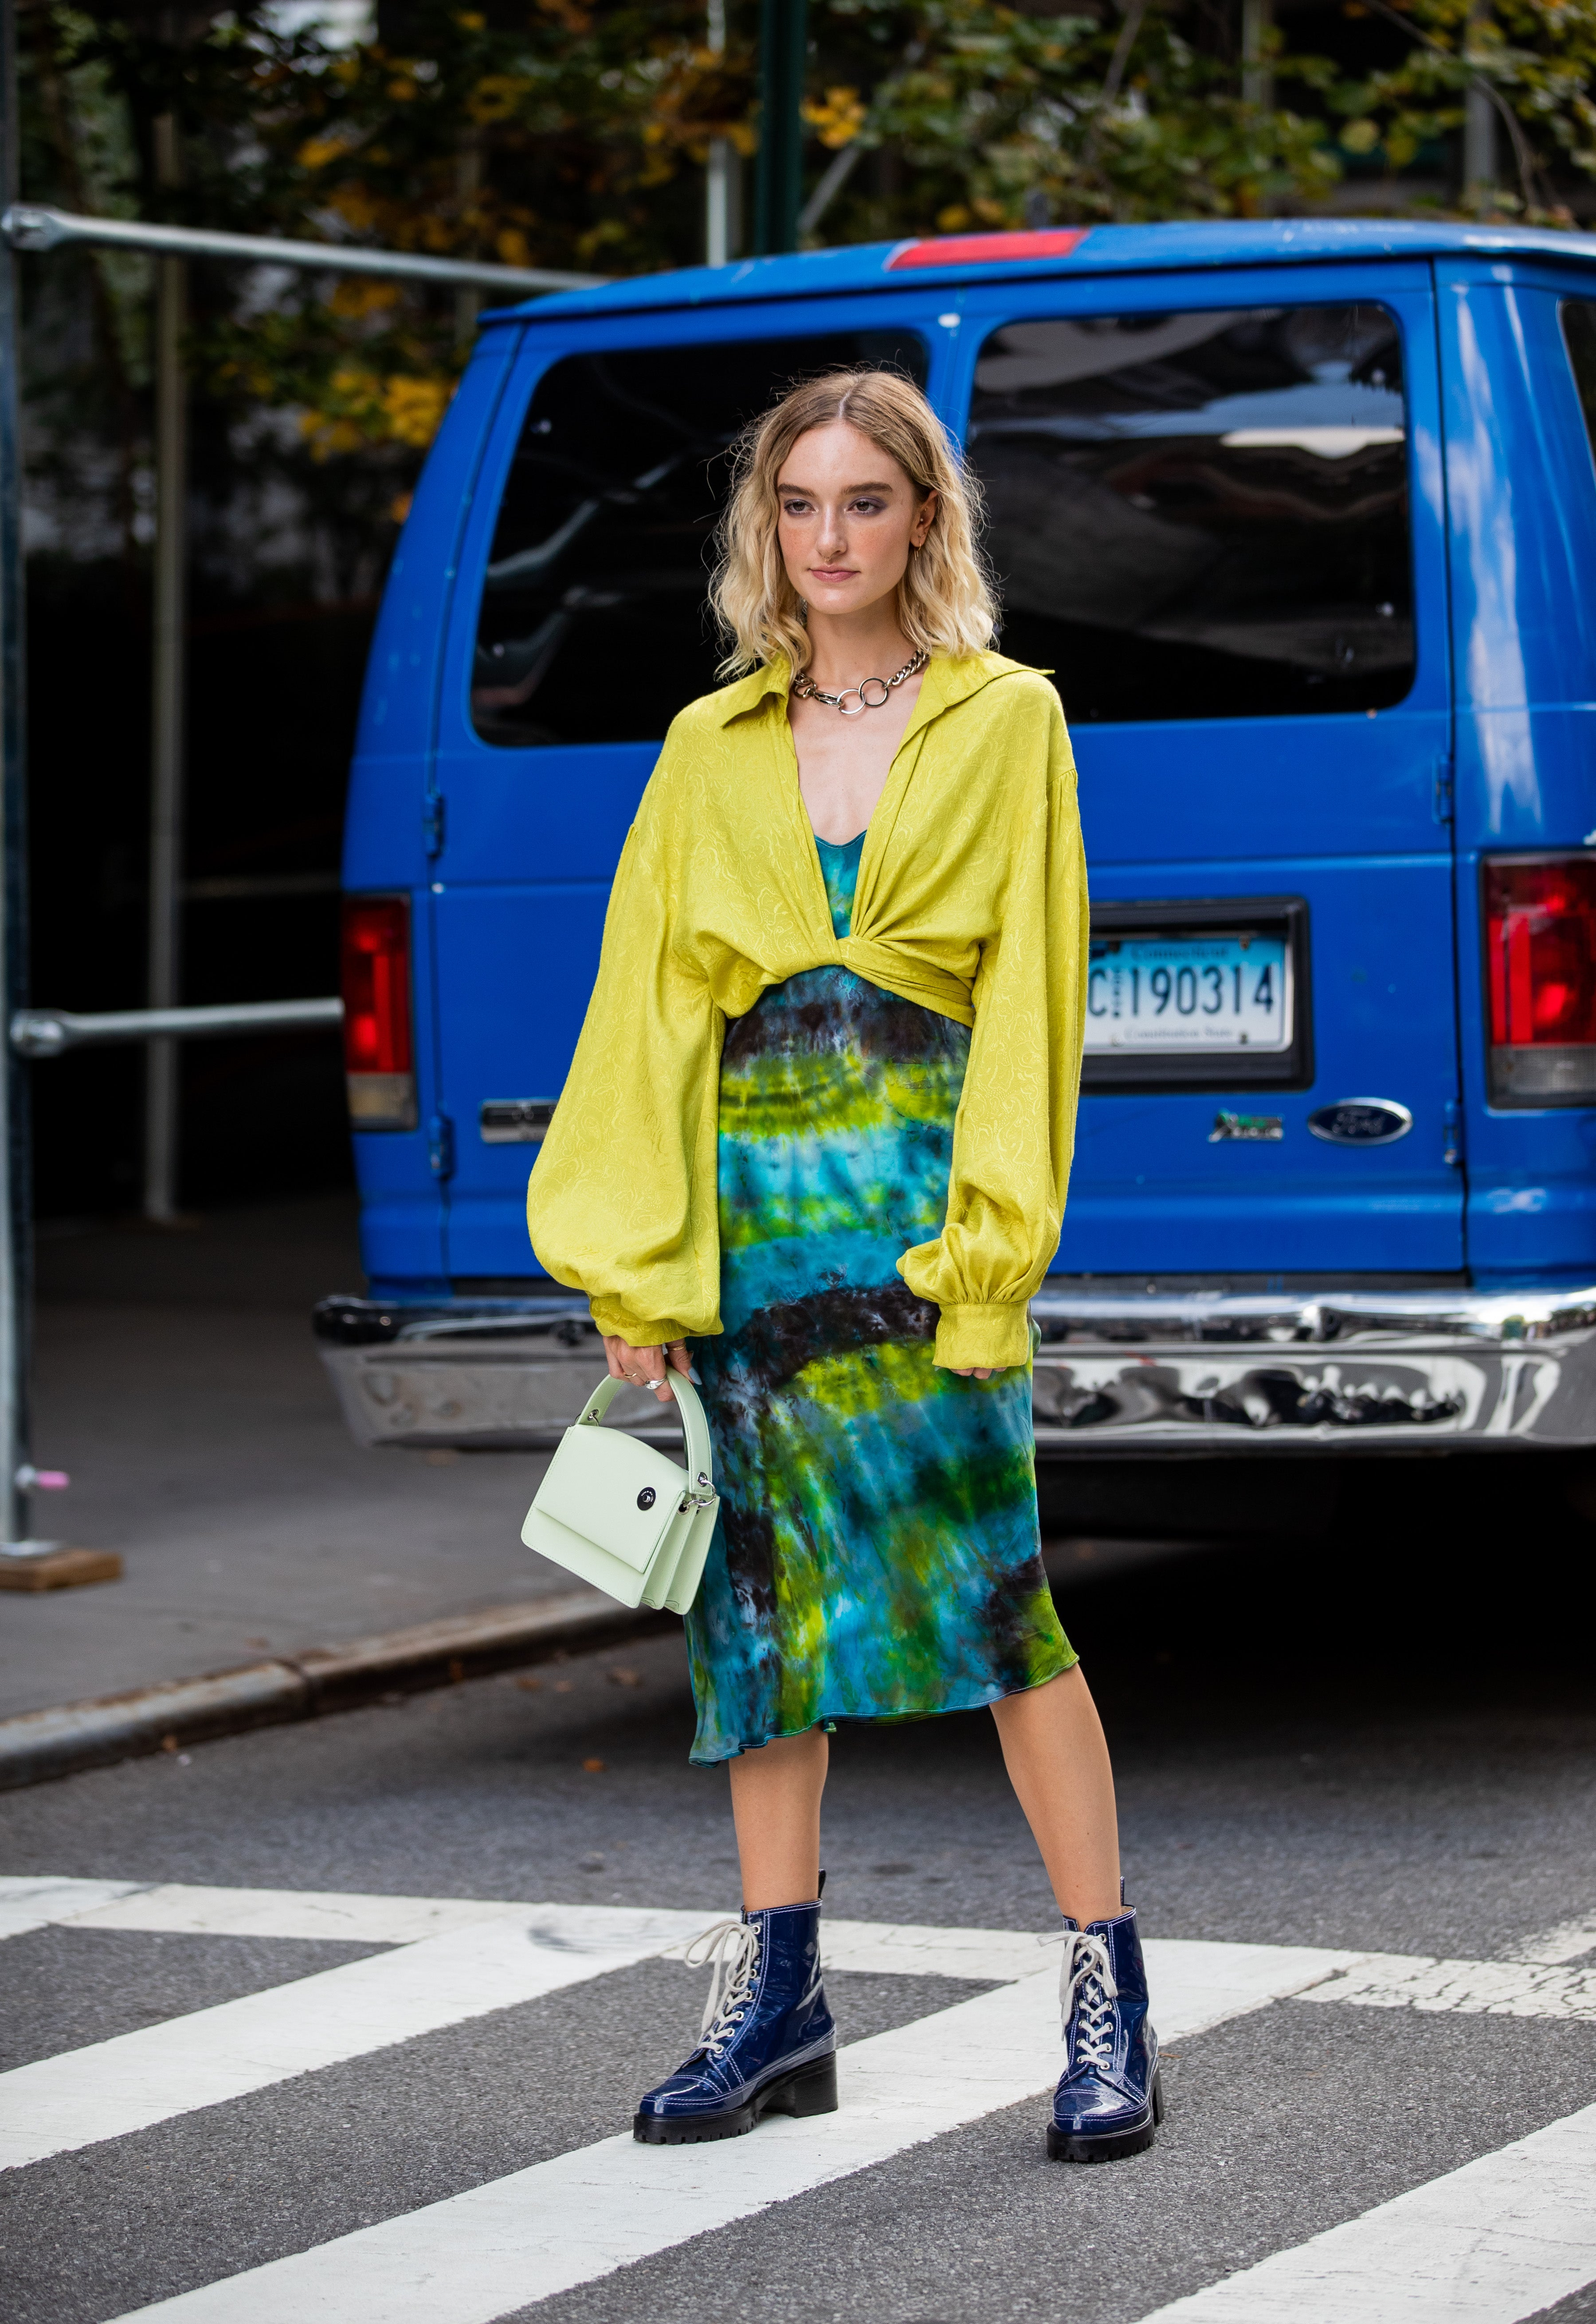 Forget Pantone, These Are The Colours Making The Biggest Splash At NYFW